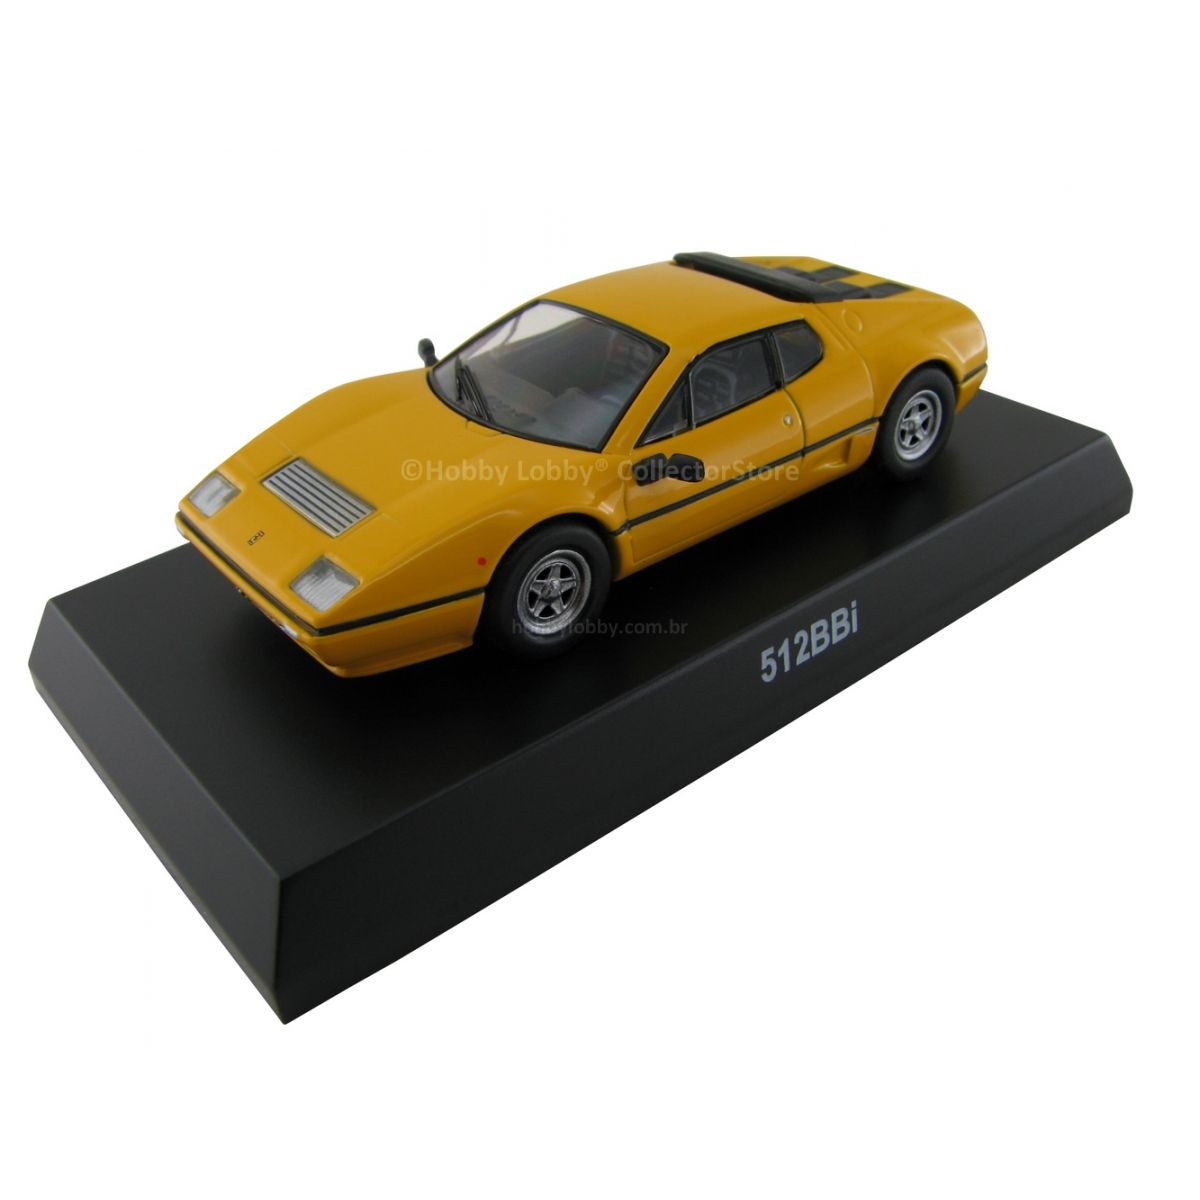 Kyosho - Ferrari Minicar Collection VI - Ferrari 512 BBi [amarela]